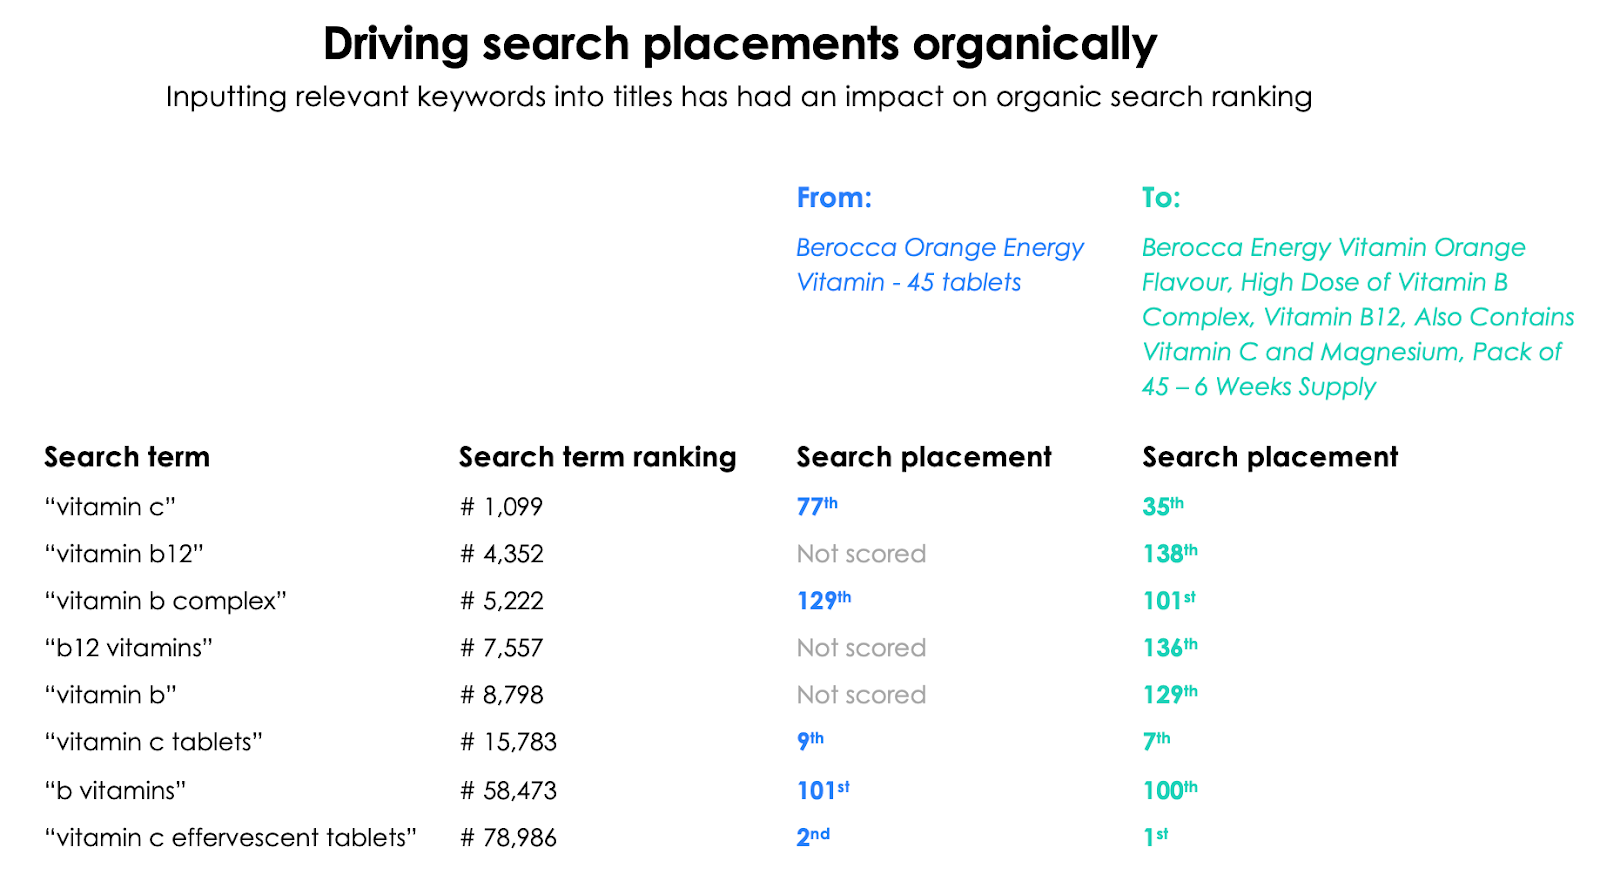 Driving search placement organically